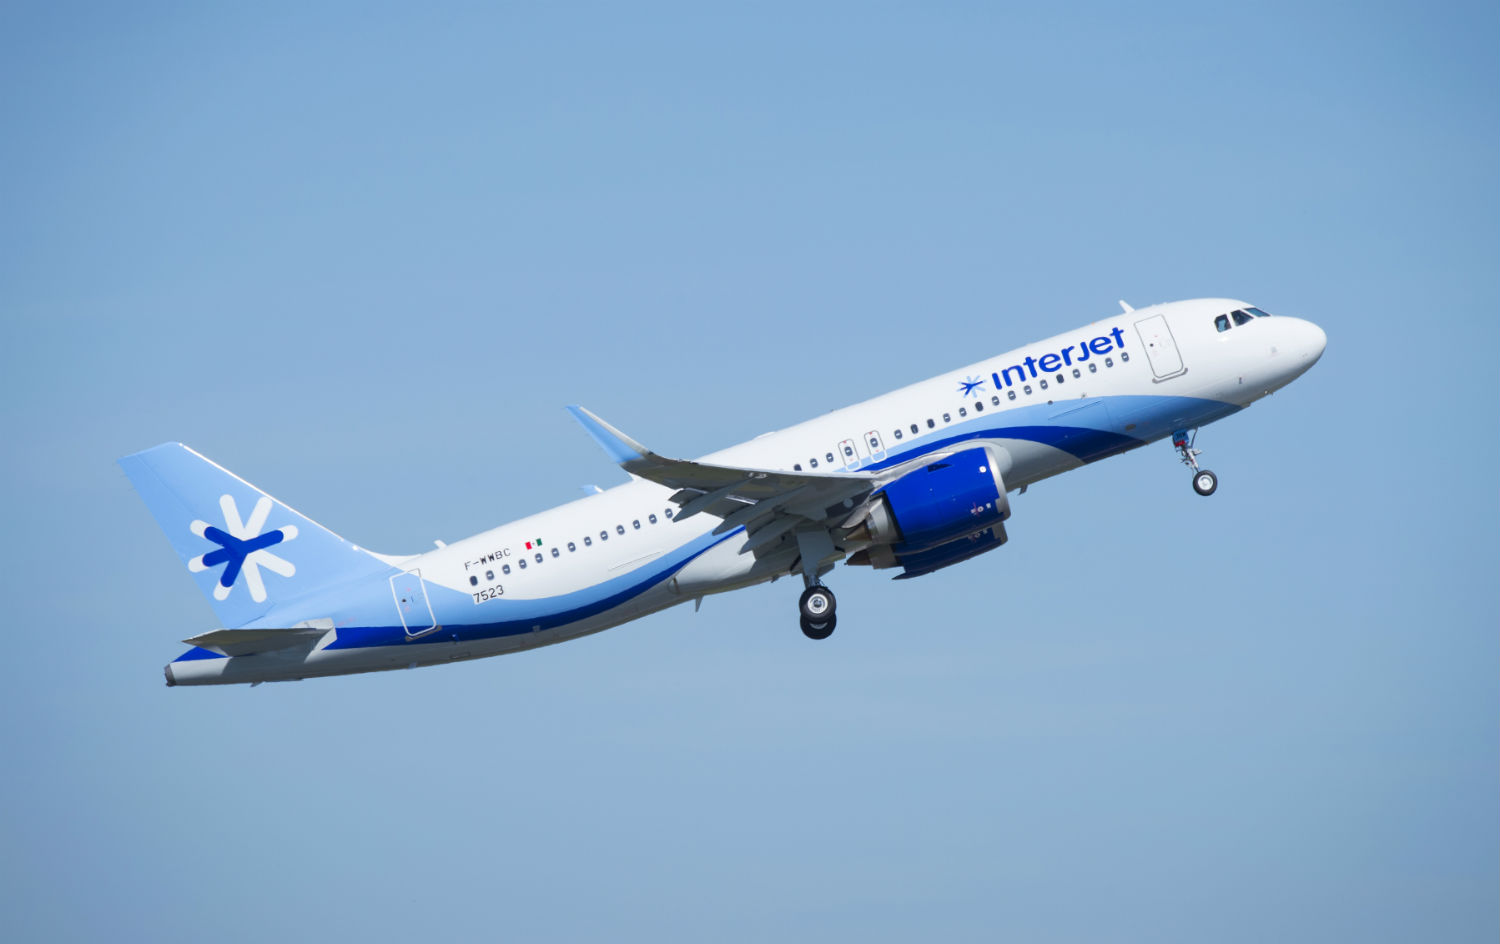 Interjet airliner in flight